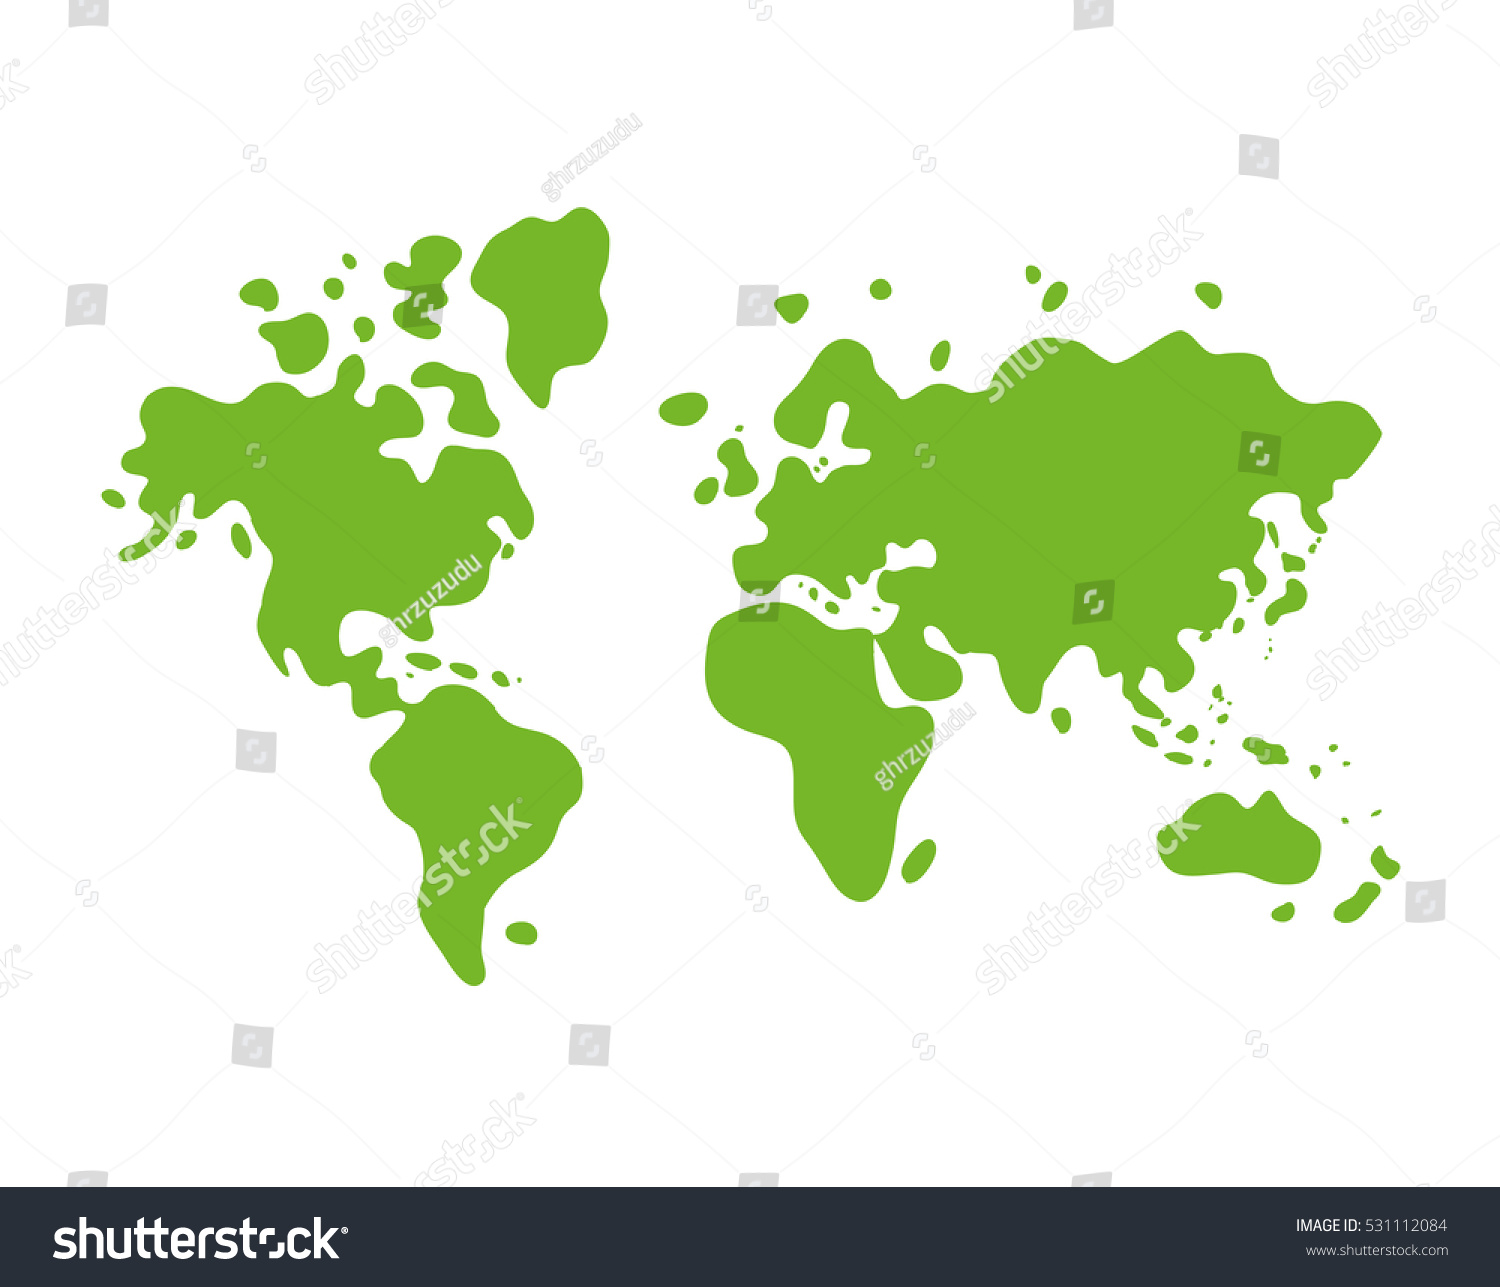 Green world map icon stock vector 531112084 shutterstock green world map icon gumiabroncs Gallery